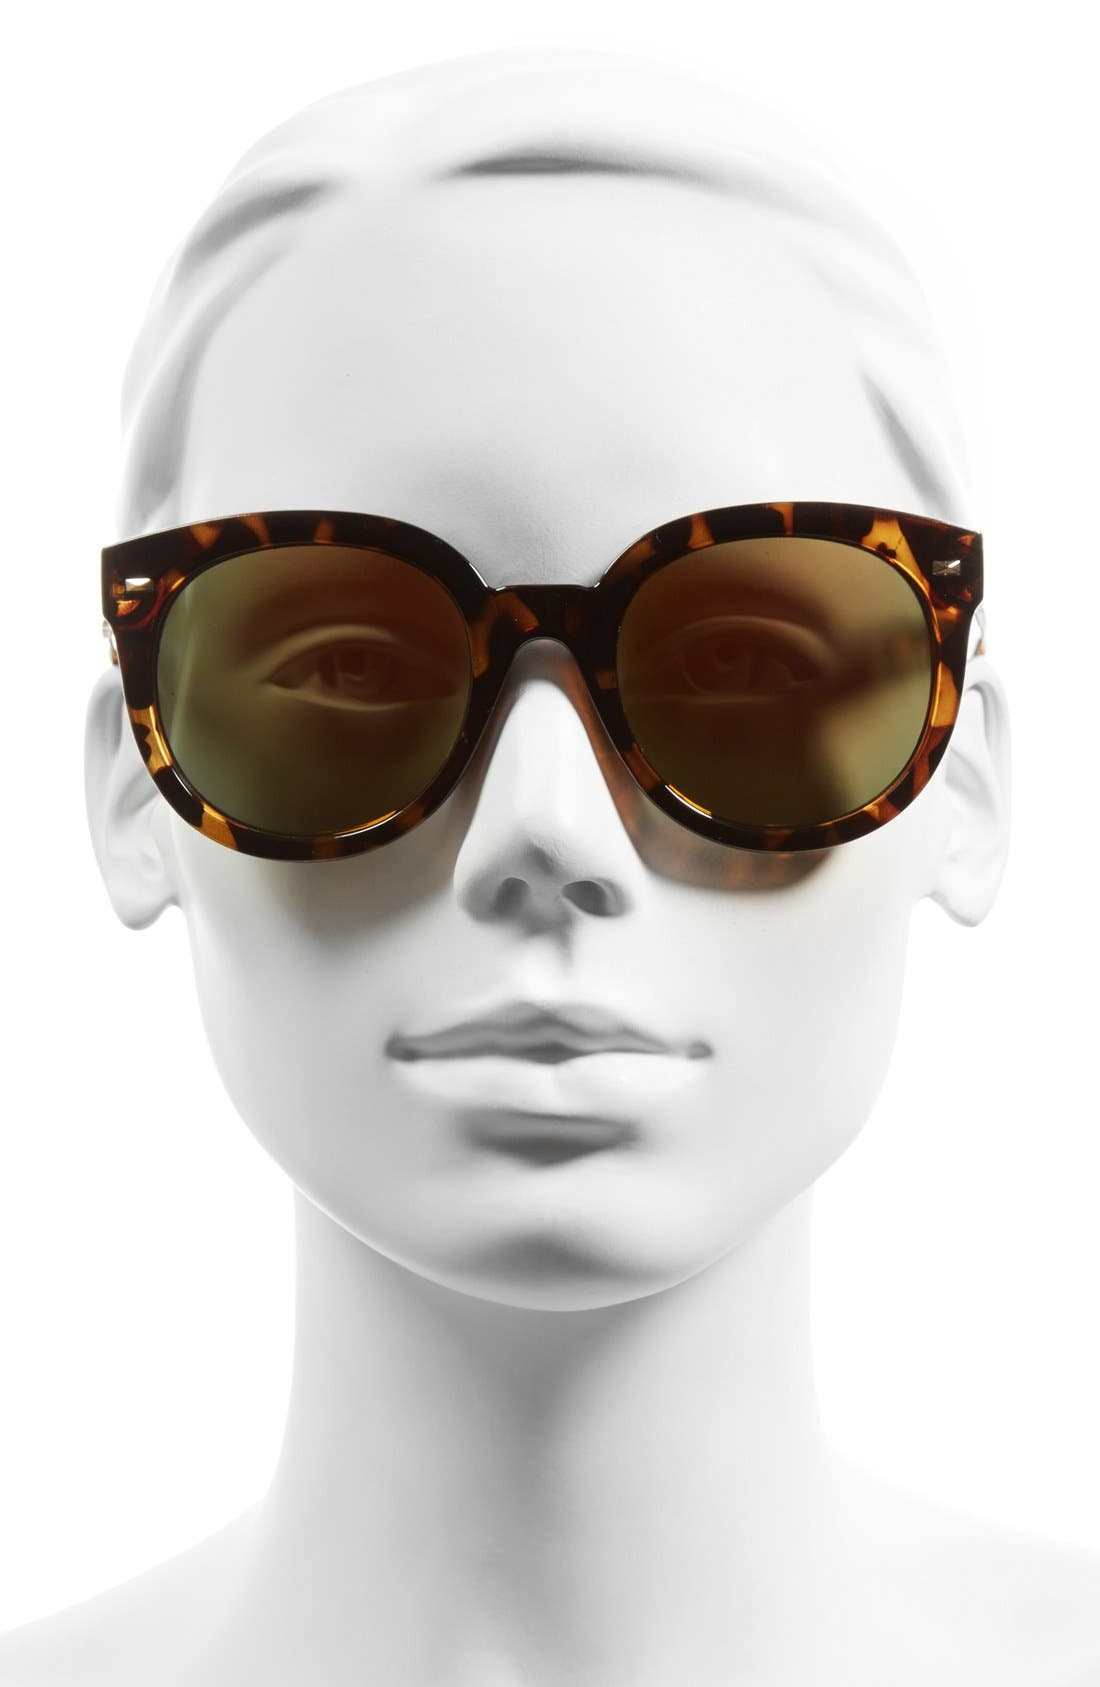 52mm Oversize Mirrored Sunglasses,                             Alternate thumbnail 4, color,